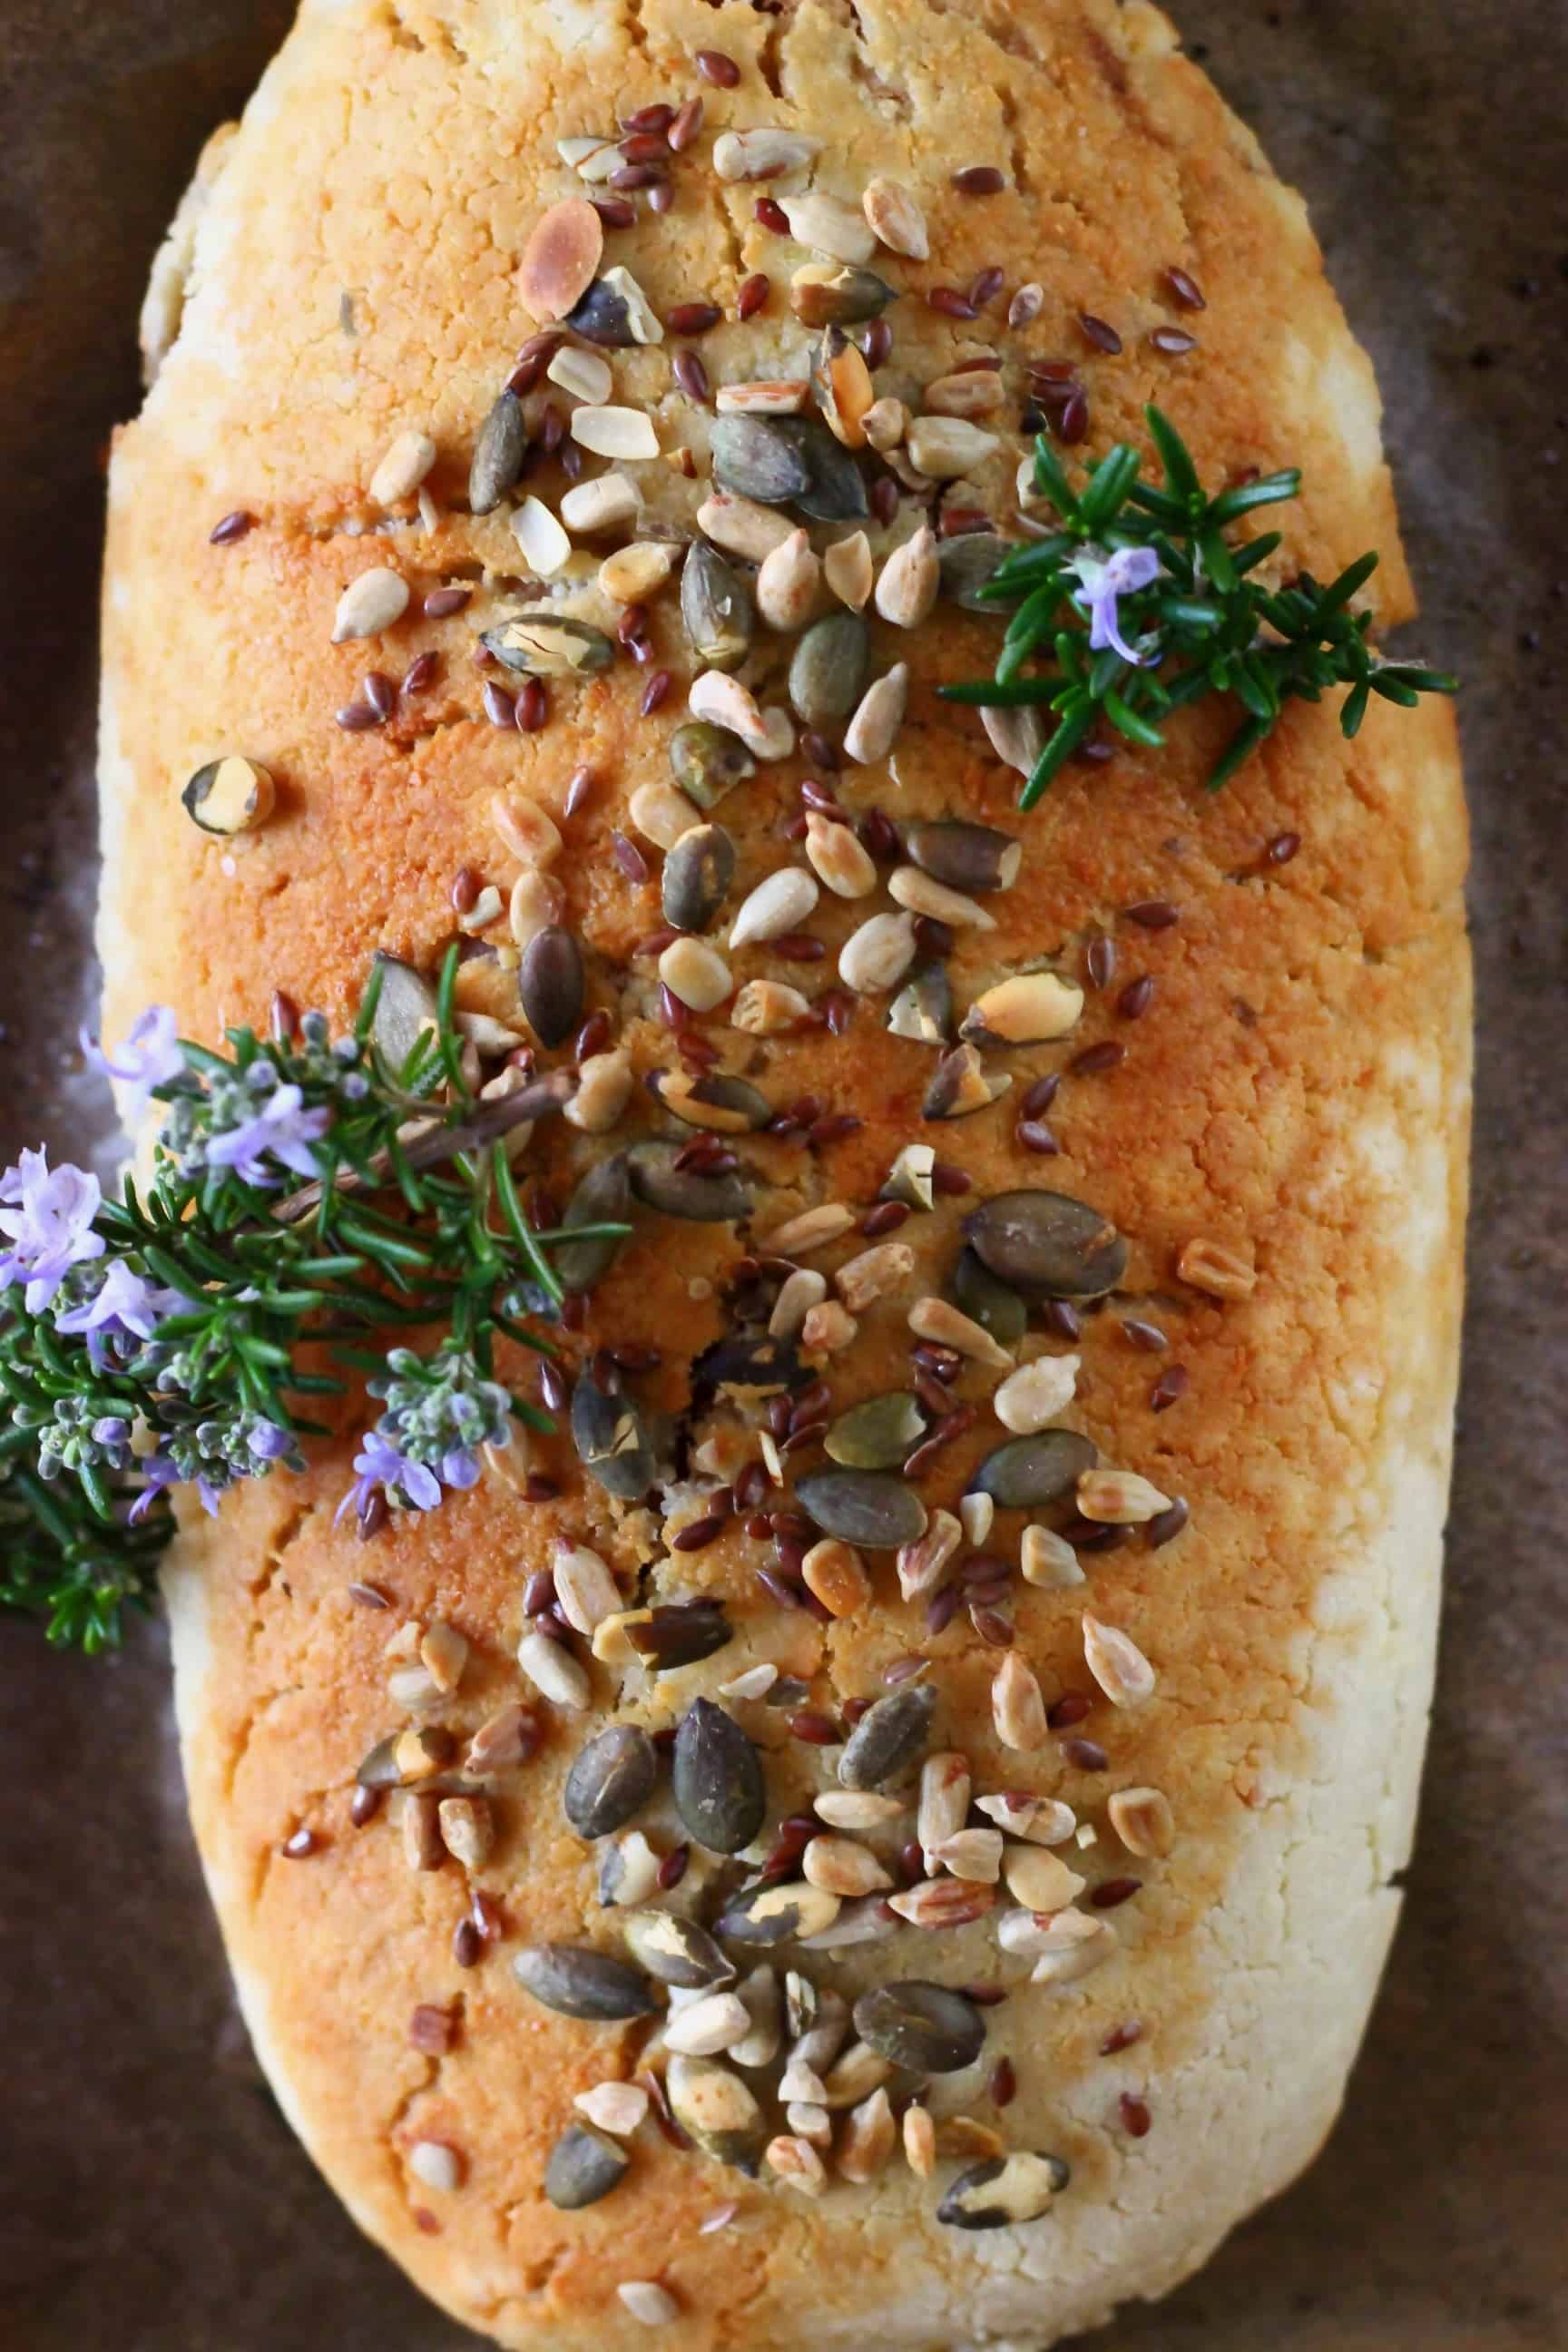 A golden brown vegan wellington topped with mixed seeds and sprigs of rosemary on a baking tray